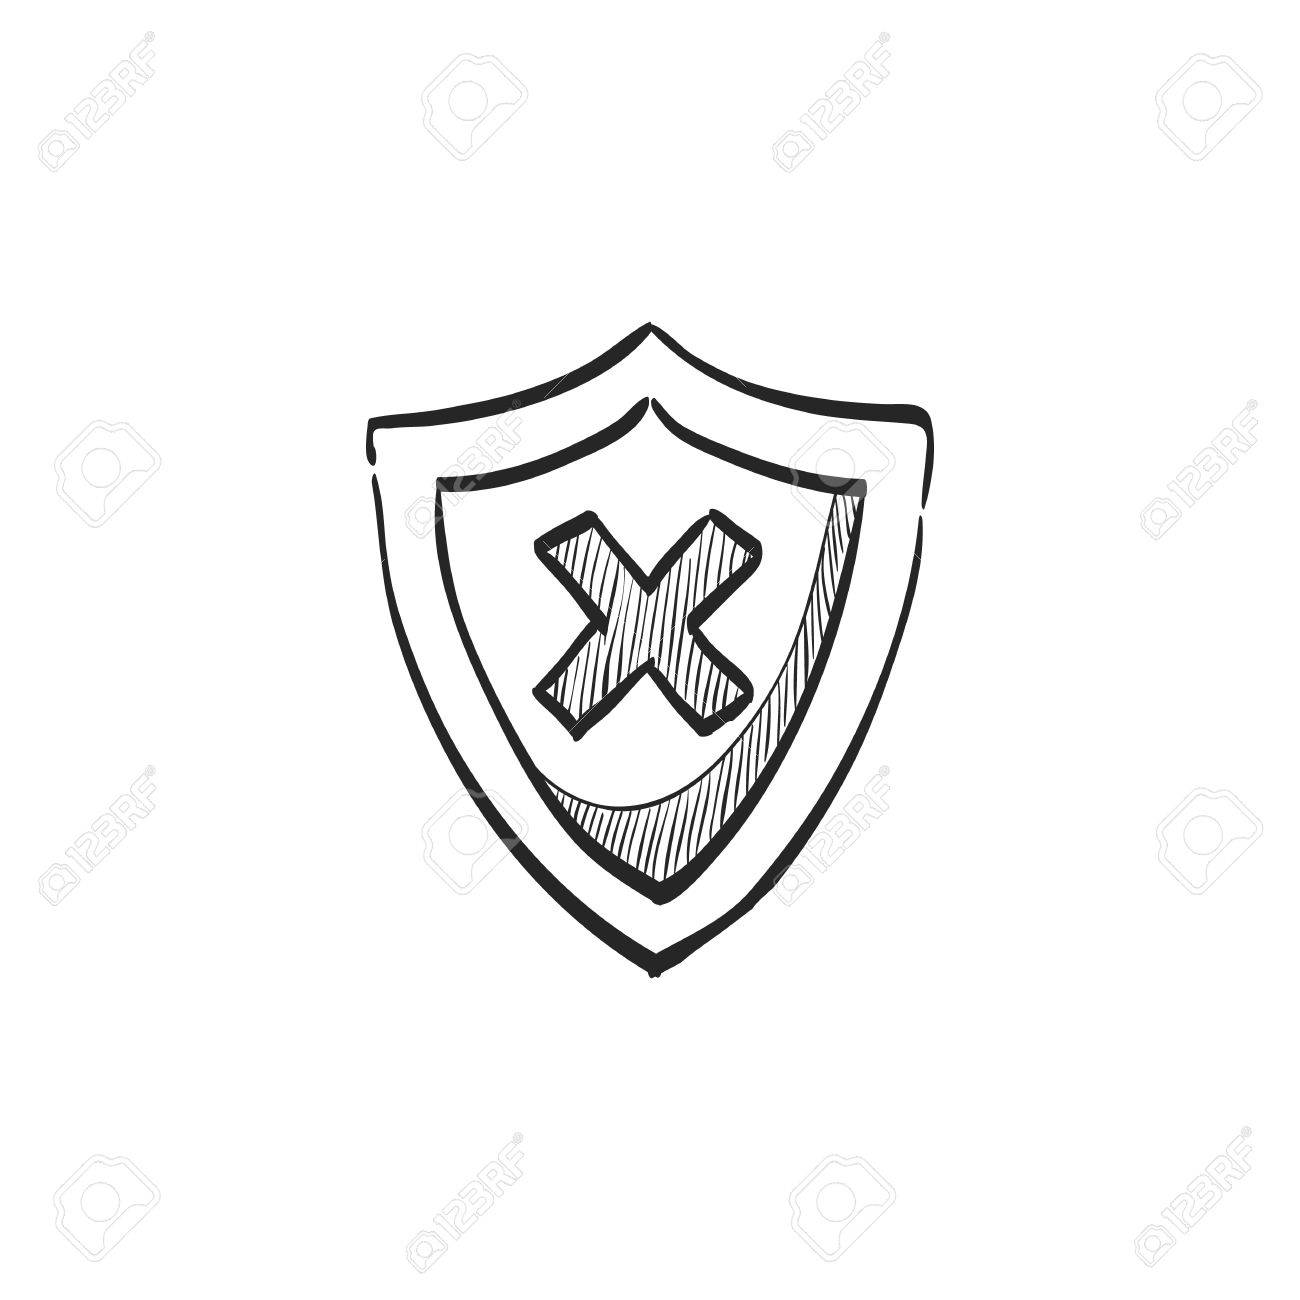 1300x1300 Shield Icon In Doodle Sketch Lines. Protection, Computer Virus